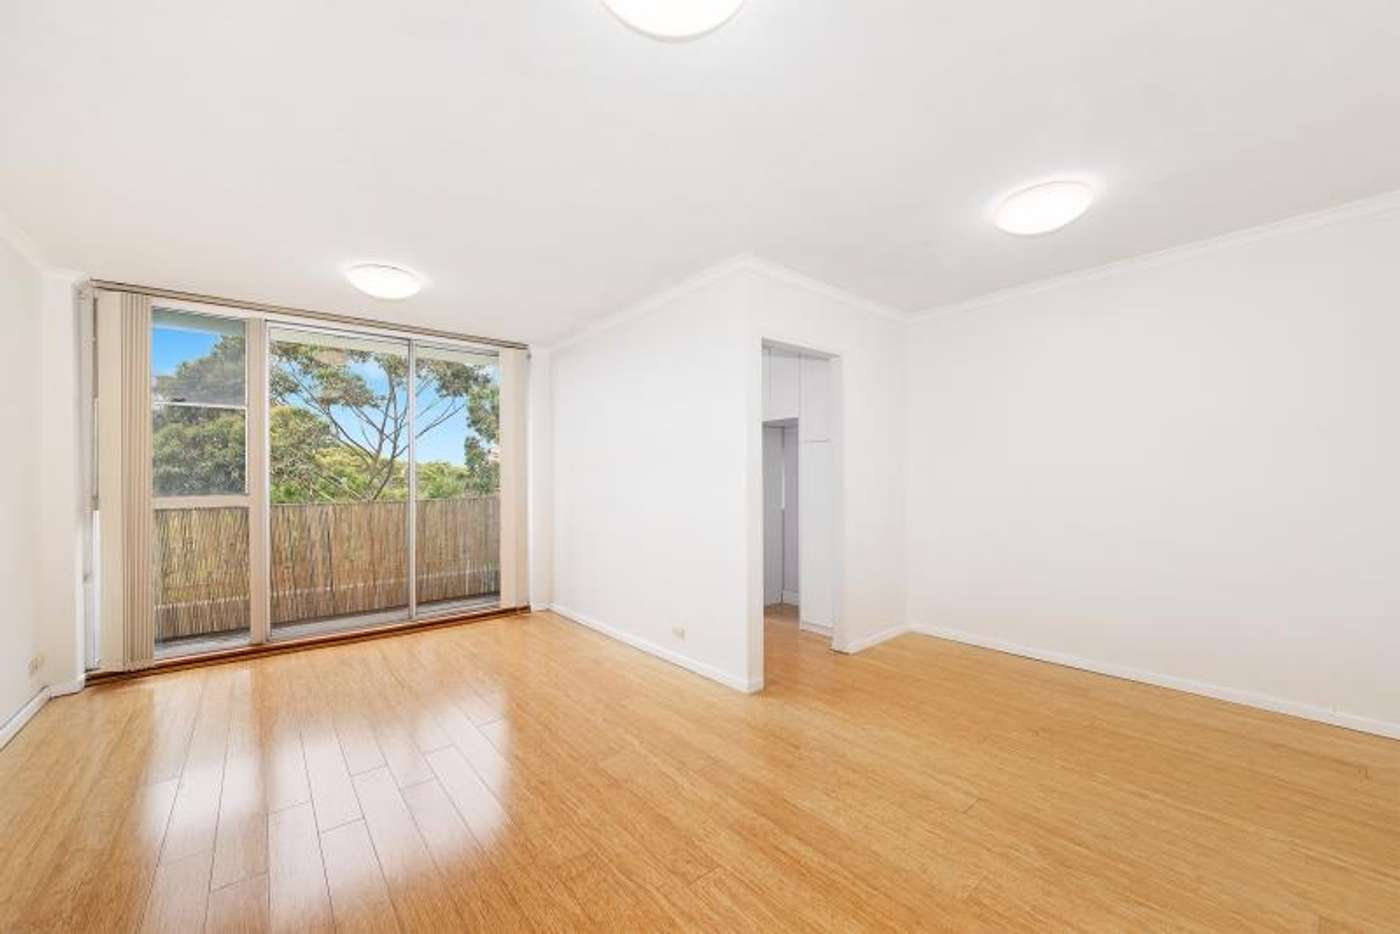 Main view of Homely apartment listing, 8C/14 Bligh Place, Randwick NSW 2031